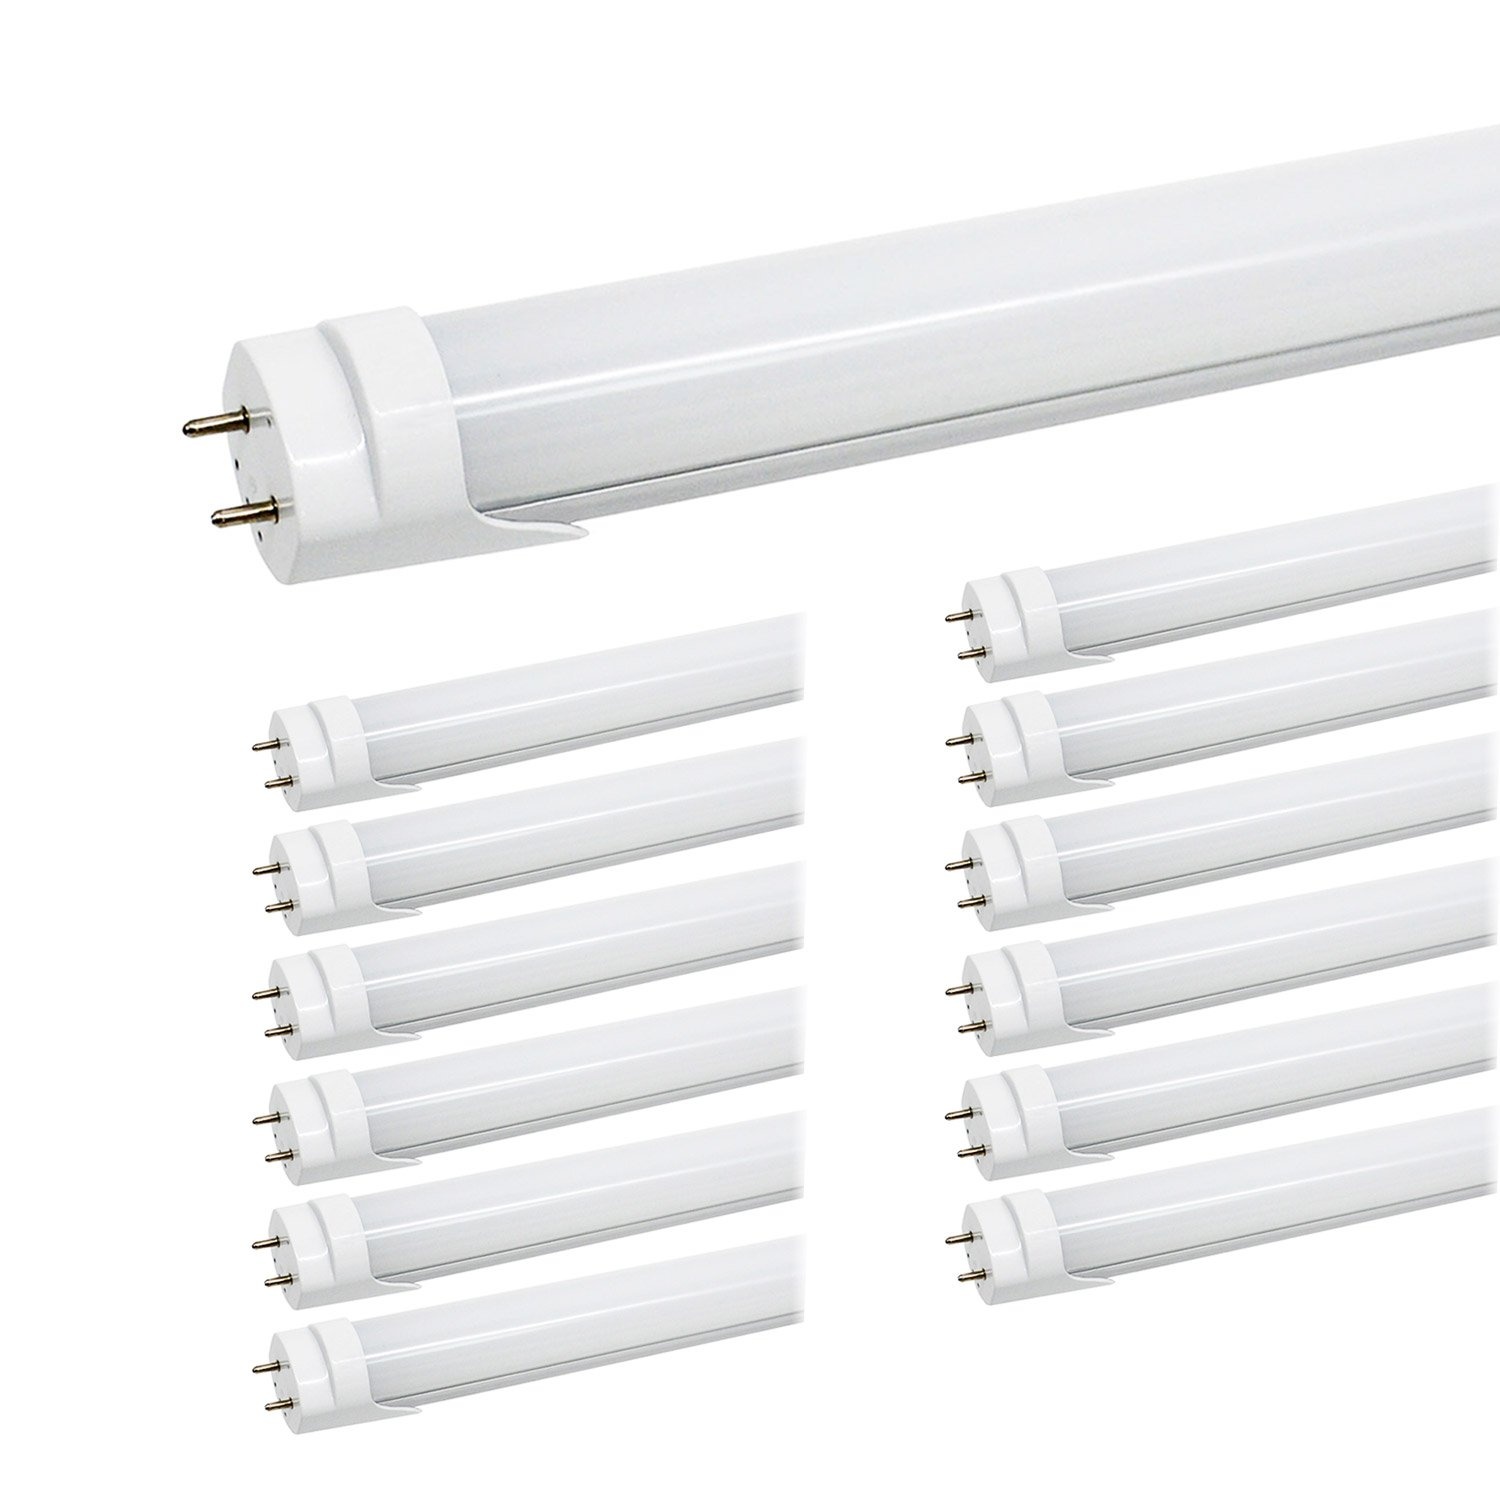 JESLED 4FT T8 LED Bulbs - 24W 5000K Daylight, 3000LM, T10 T12 Fluorescent Tube Light Replacement, Double Row 192LEDs, Frosted, Dual-end Powered, Ballast Bypass, Garage Warehouse Shop Lights (12-Pack)